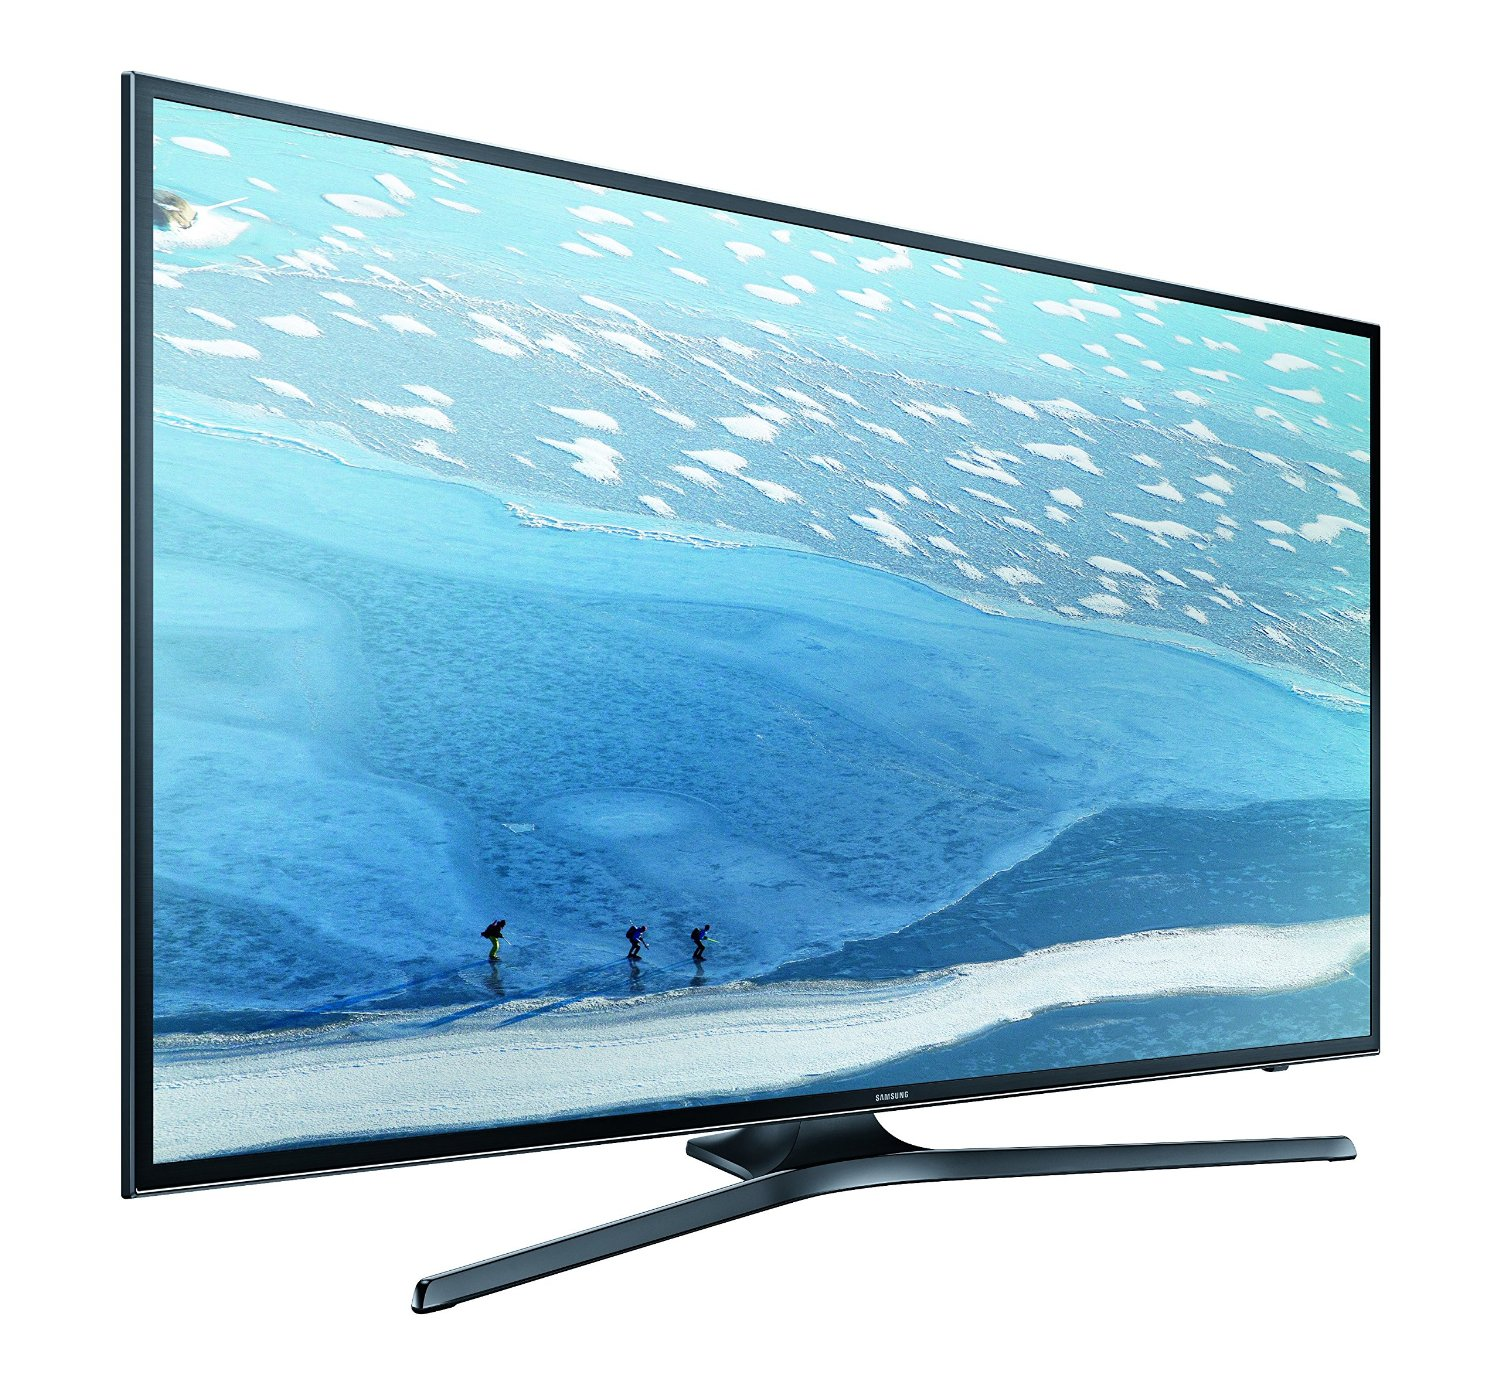 amazon angebote samsung 70 zoll uhd fernseher mit hdr. Black Bedroom Furniture Sets. Home Design Ideas